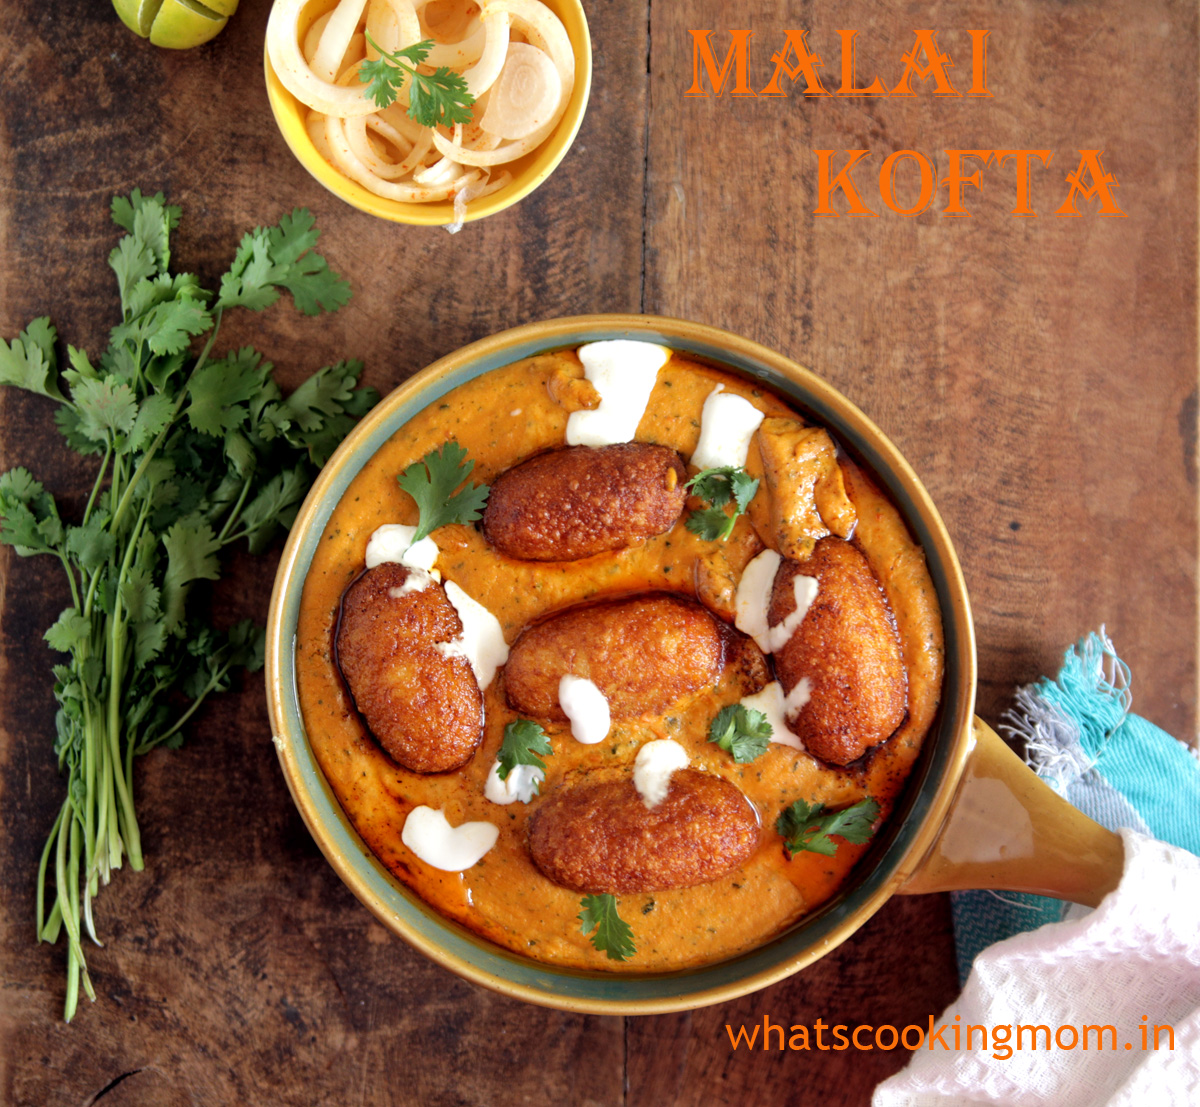 Malai Kofta served in a ceramic bowl on a wooden table